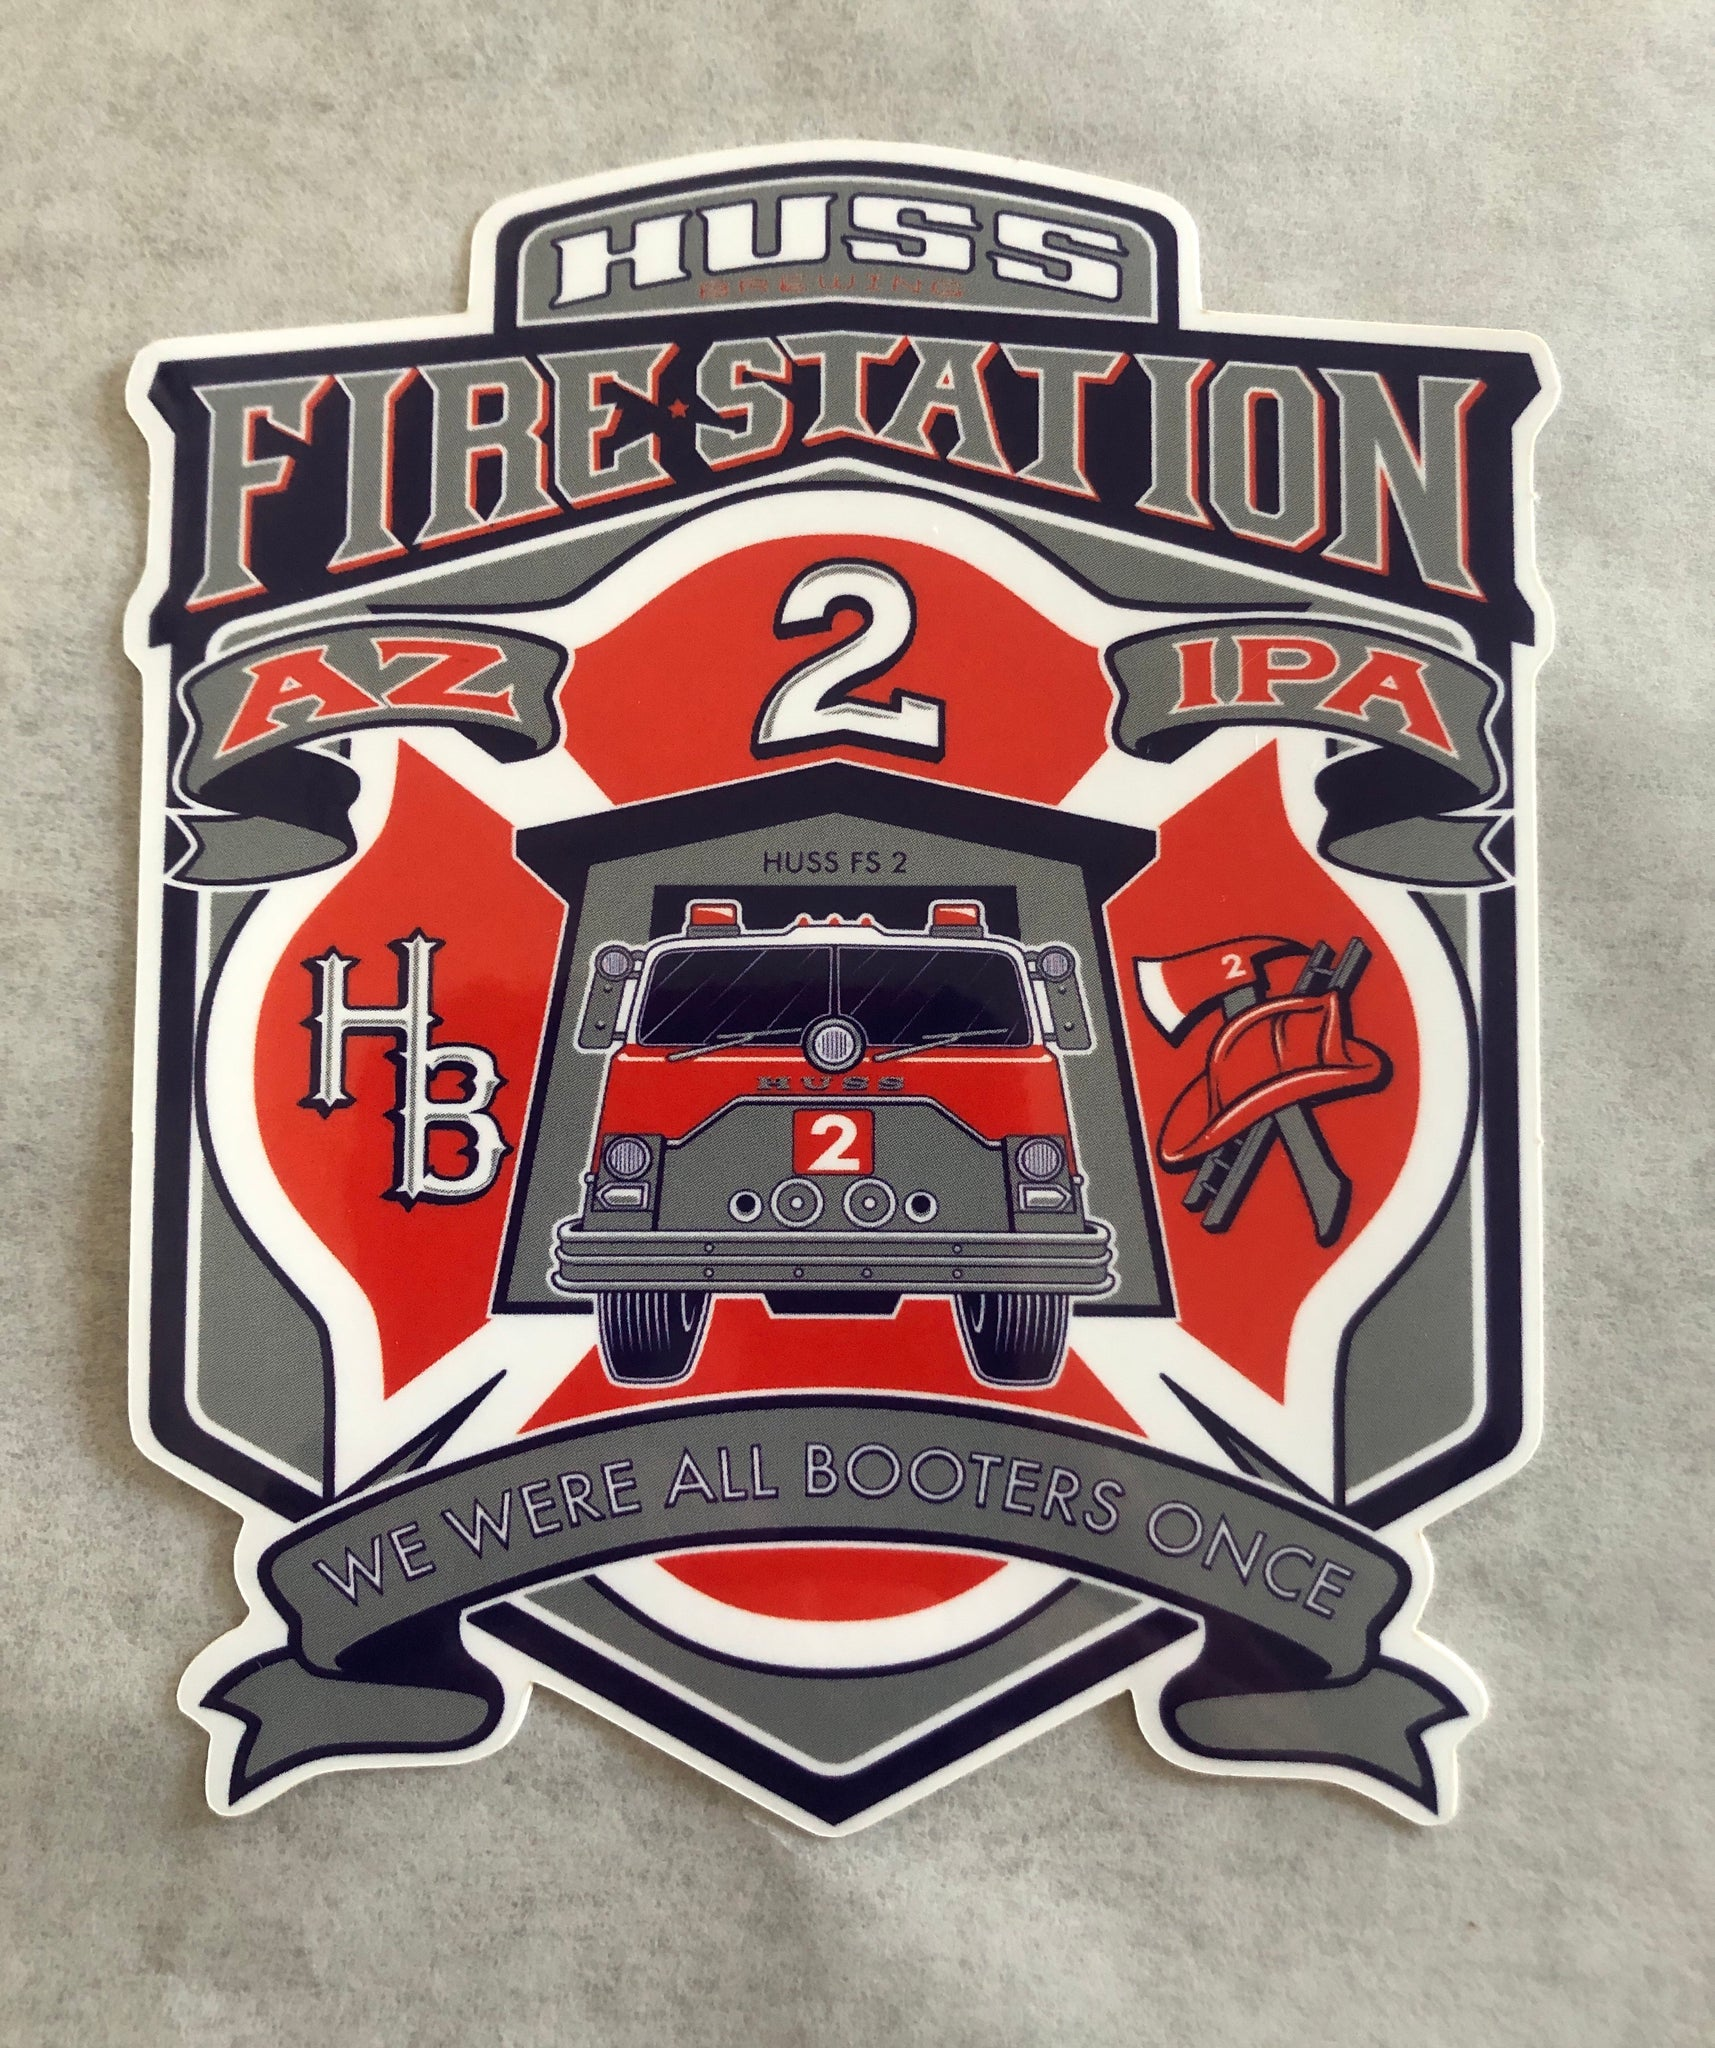 Fire Station 2 sticker pack